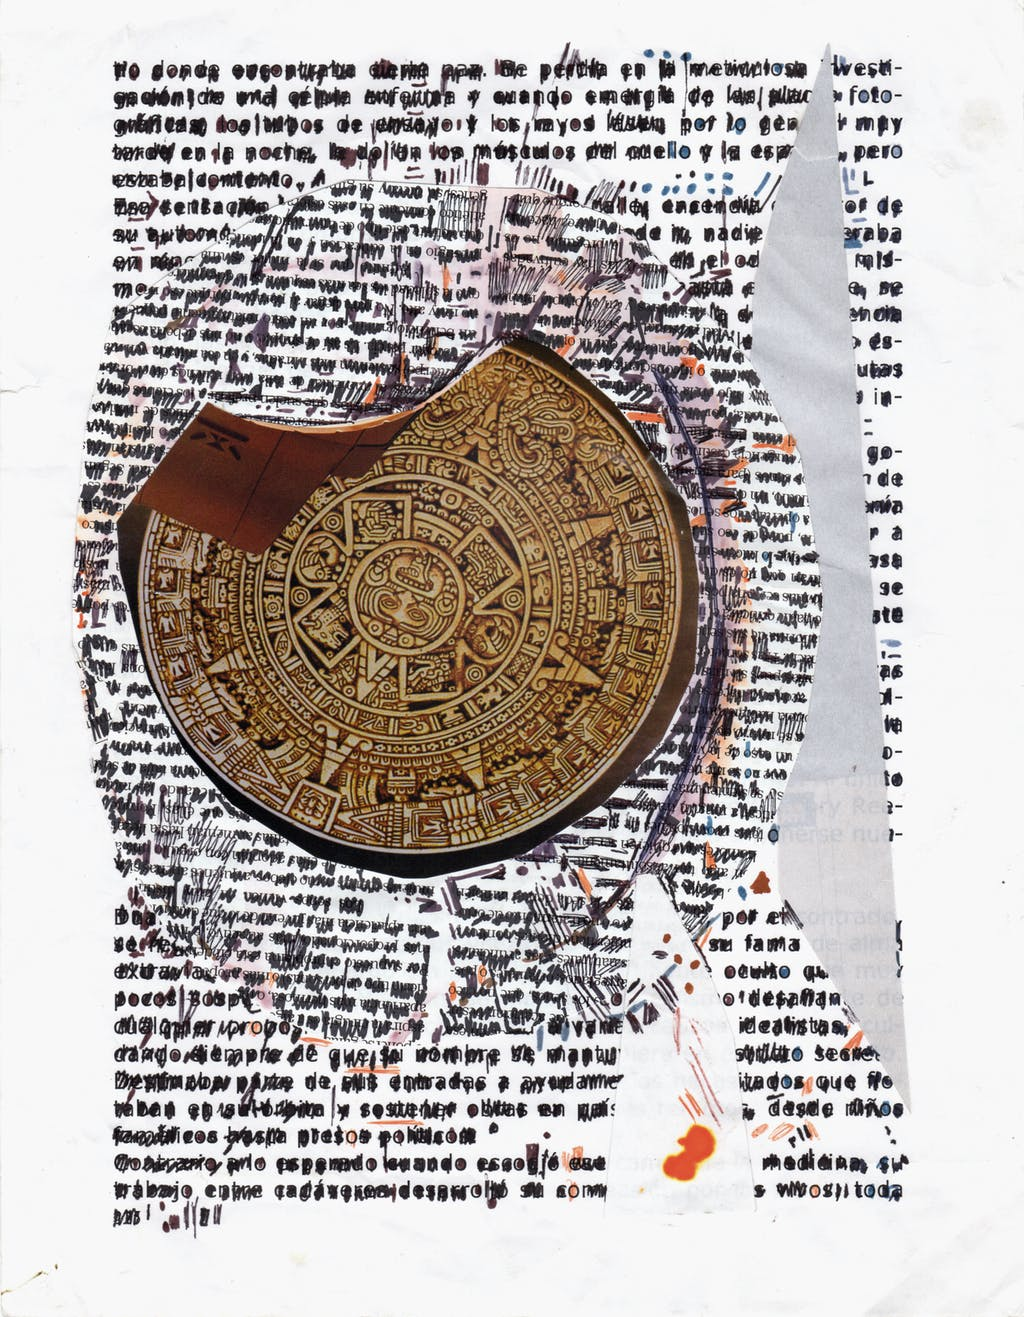 pepe gaitàn, *untitled*, circa 2000. ballpoint pen, ink, collage, photocopy on paper, 11.02 x 8.27 in - © christian berst art brut, christian berst — art brut